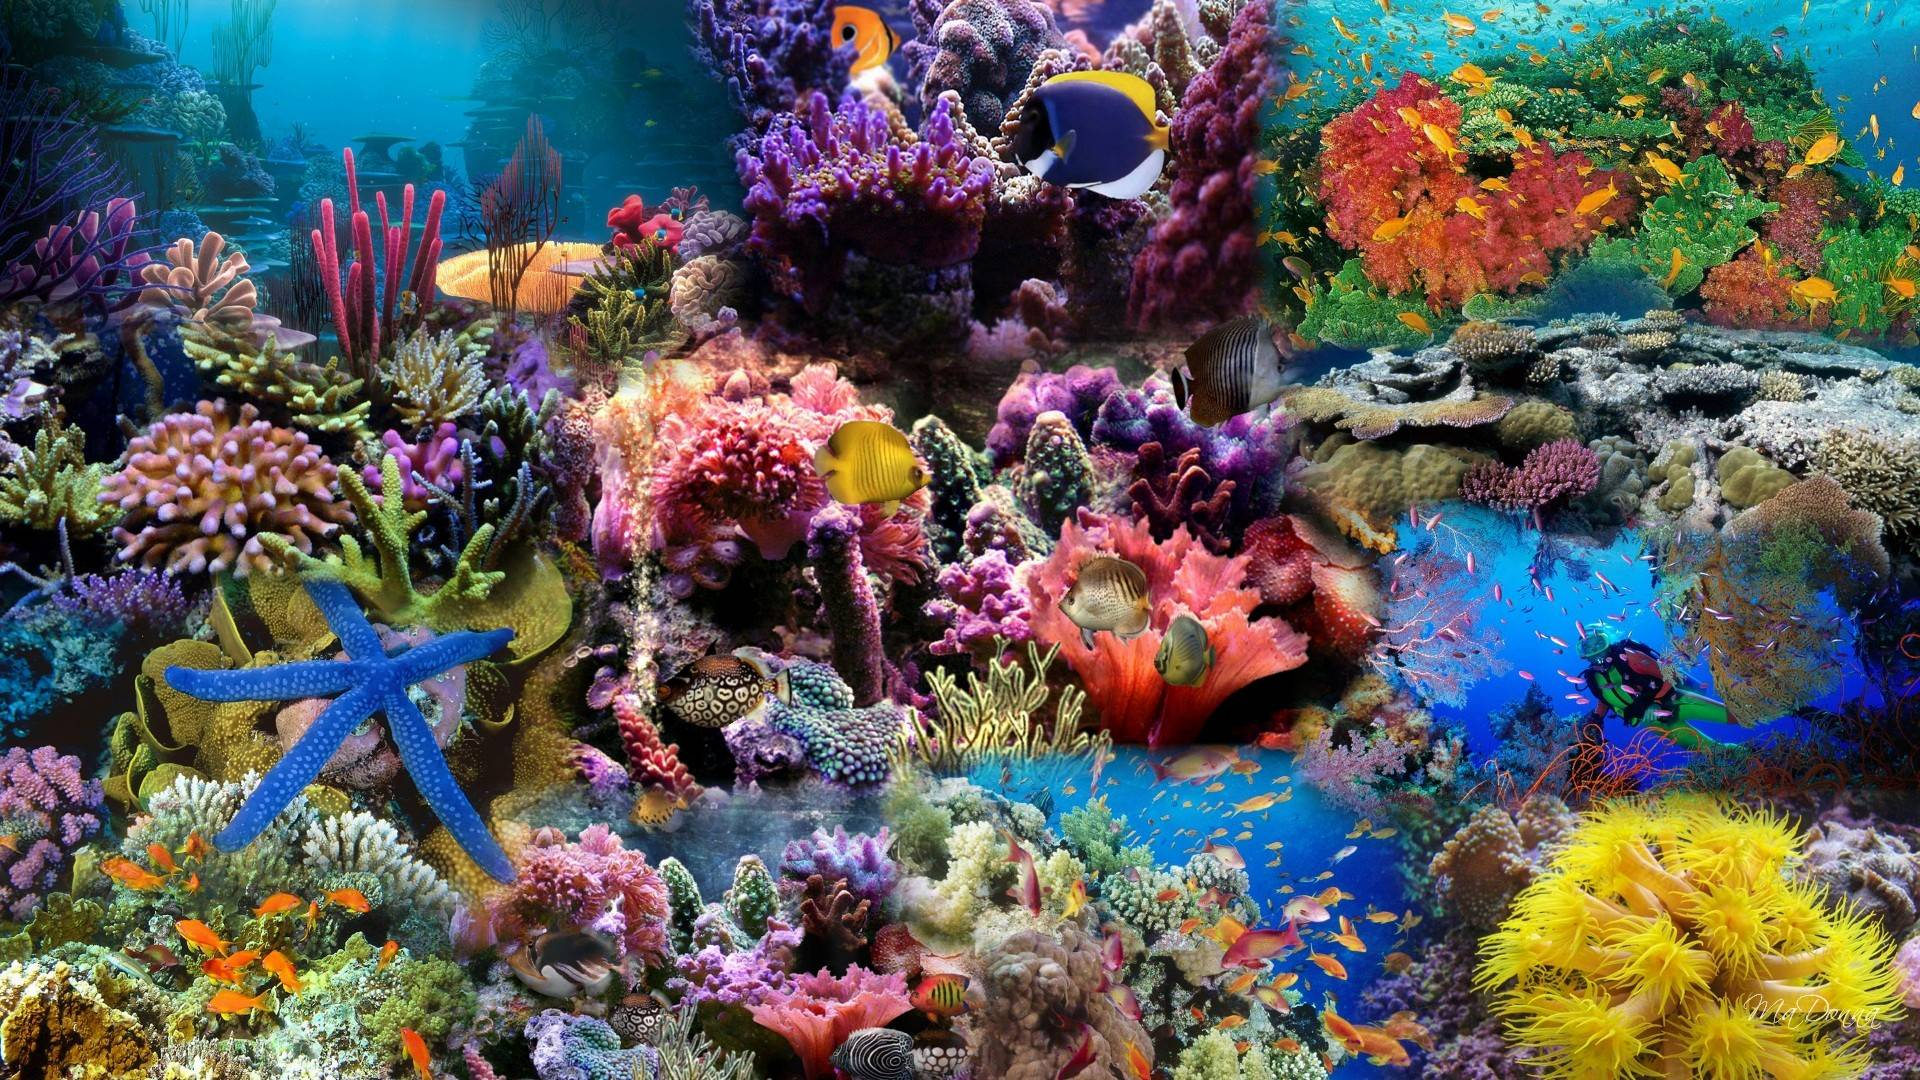 aquarium wallpaper hd - photo #3